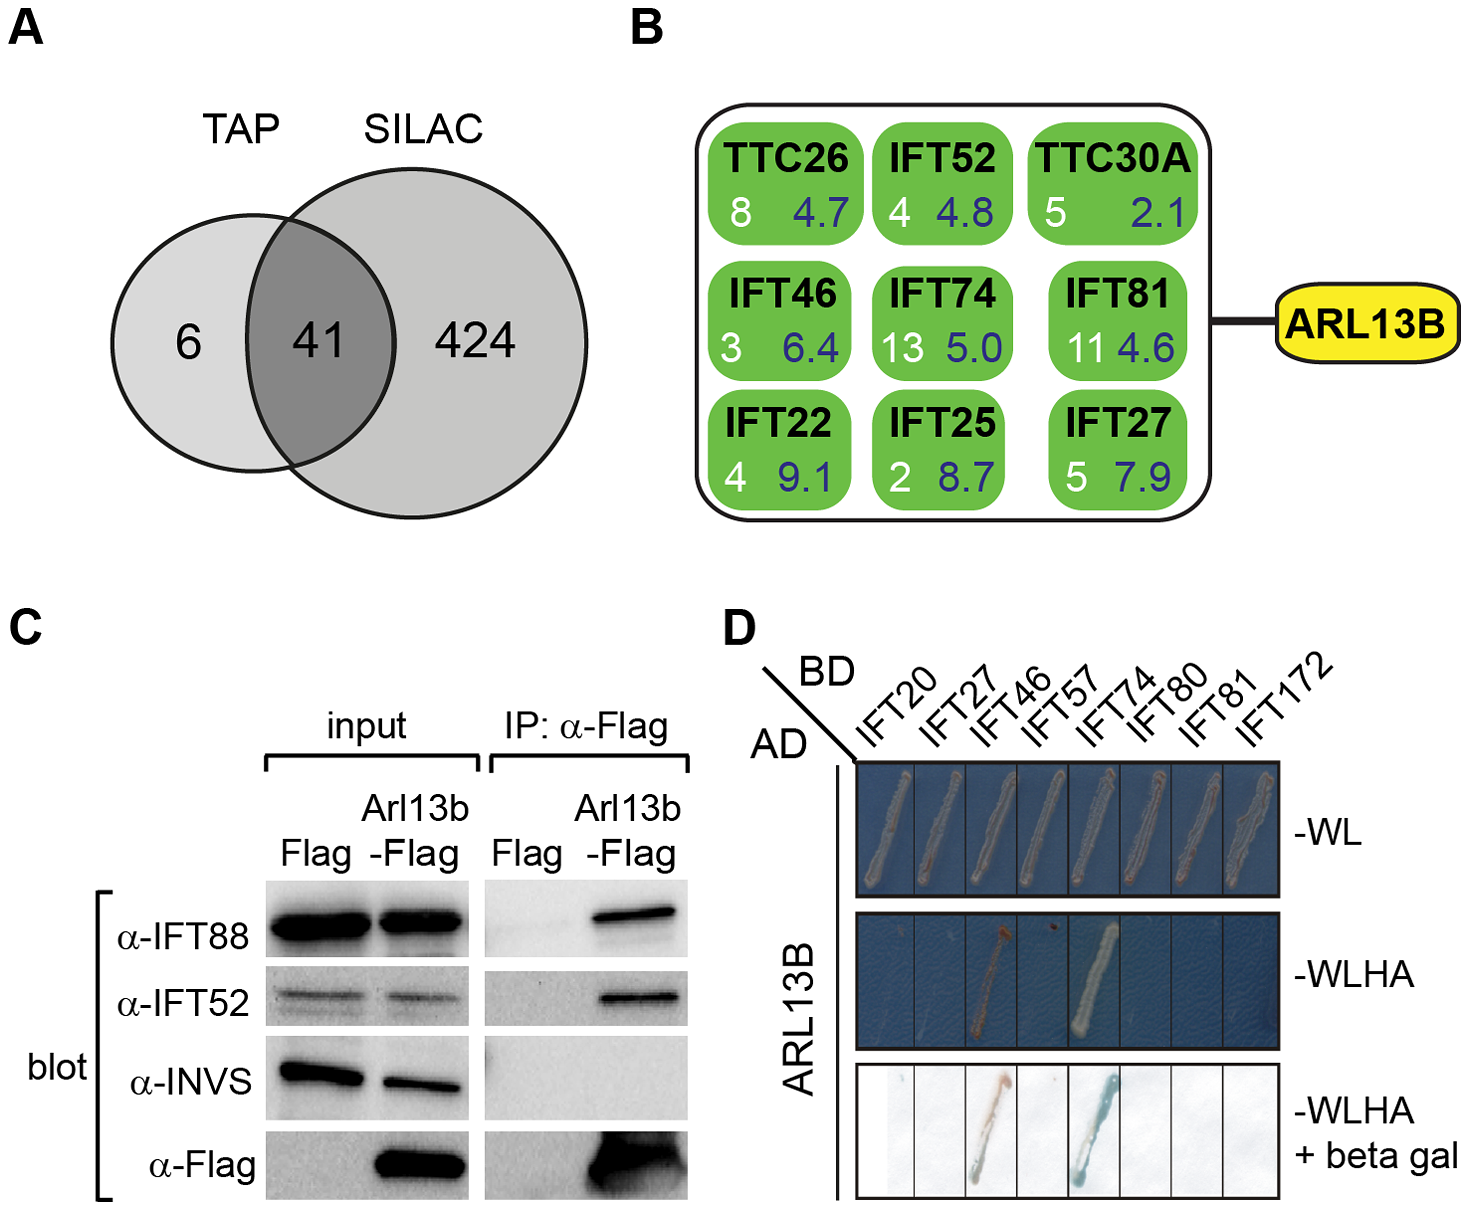 ARL13B associates with IFT-B complex via IFT46 and IFT74 interactions.